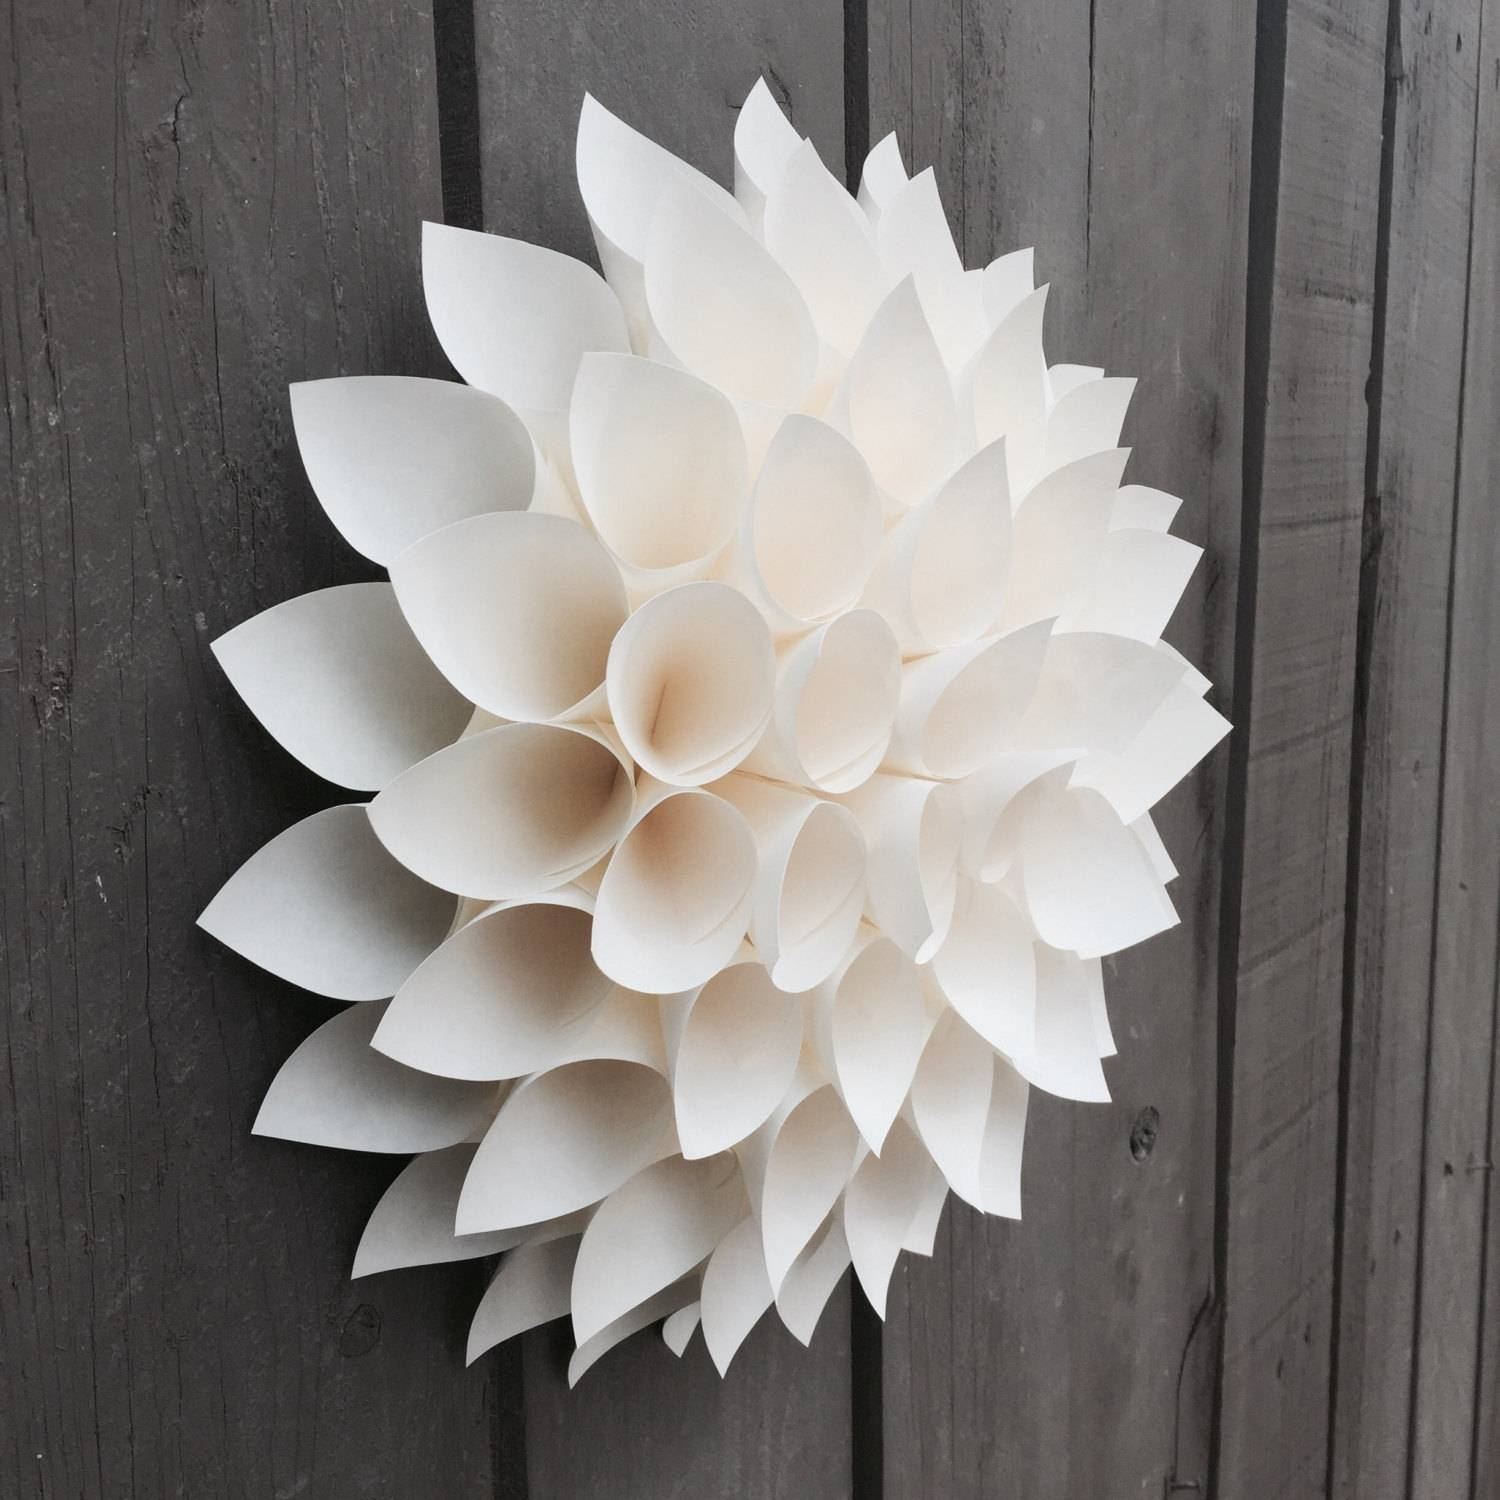 Articles With 3D Flower Wall Art Uk Tag: 3D Flower Wall Art Images For 2018 Umbra 3D Flower Wall Art (View 18 of 20)